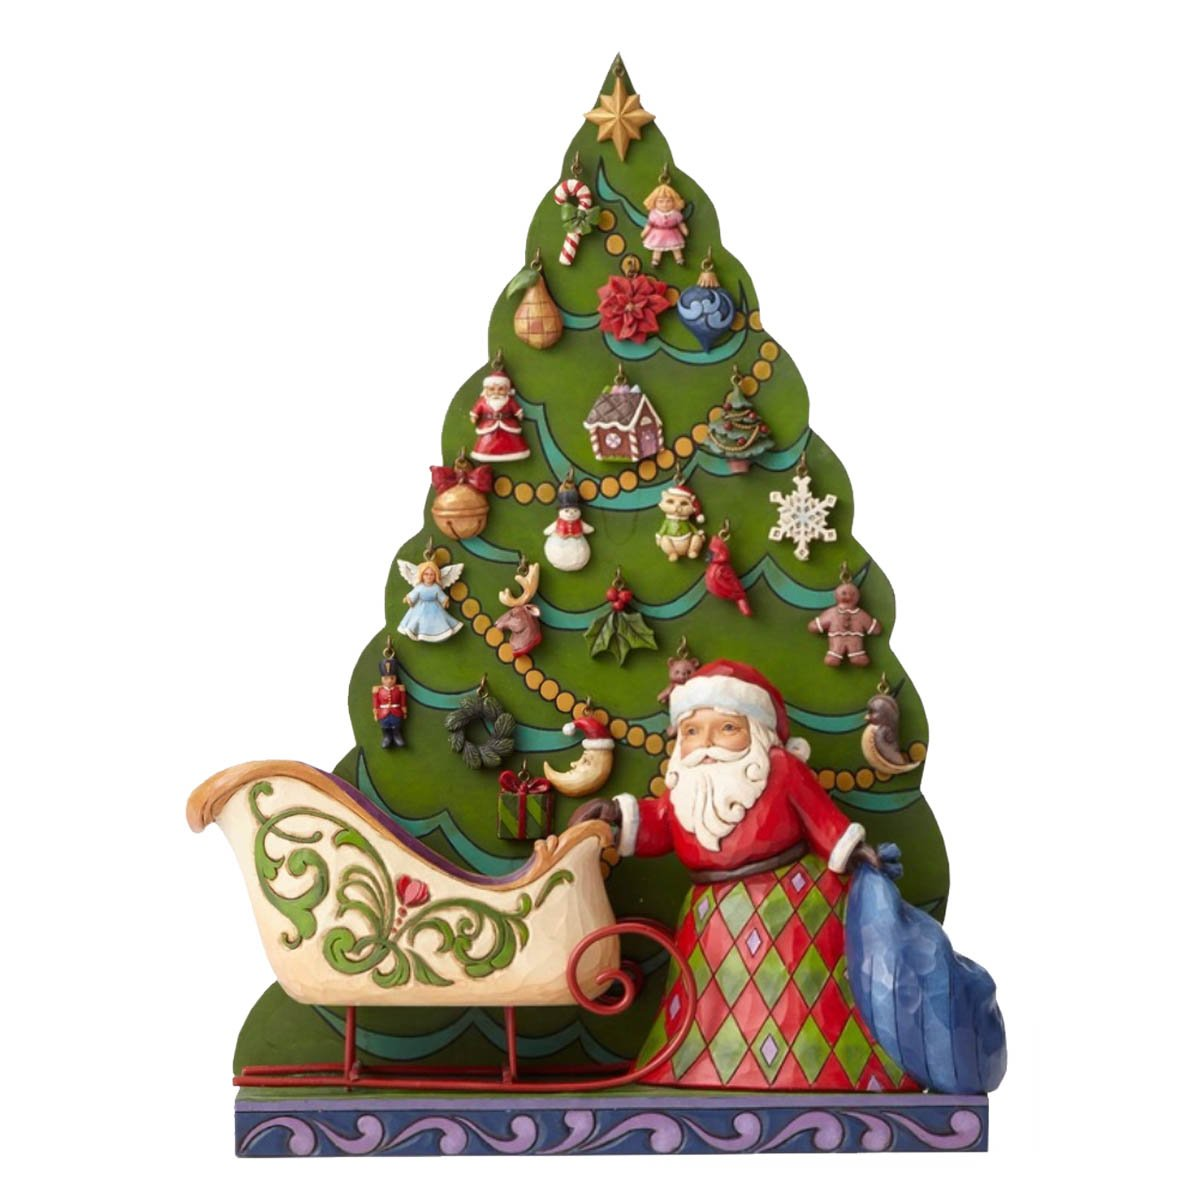 Enesco Hearwood Creek by Jim Shore HWC Multicoloured PVC Father Christmas Advent Calendar, 19 x 25 x 30 cm by Enesco (Image #1)